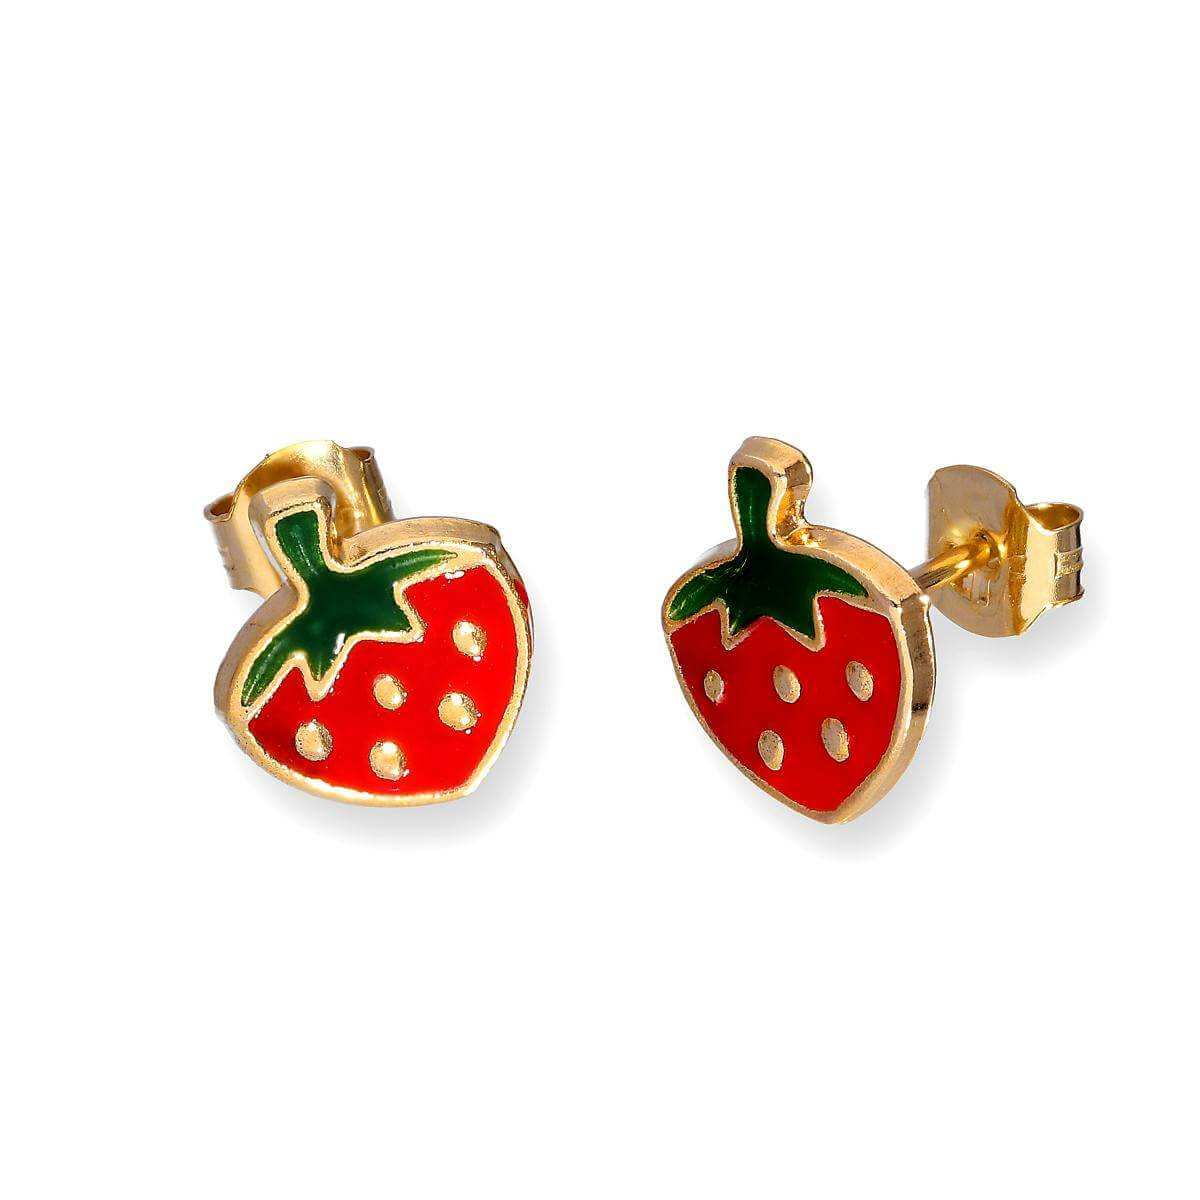 strawberry small hypoallergenic chocolate to mouthwatering food studs earrings from doughnuts pin stud ear donut glazed jewelry sugar donuts miniature